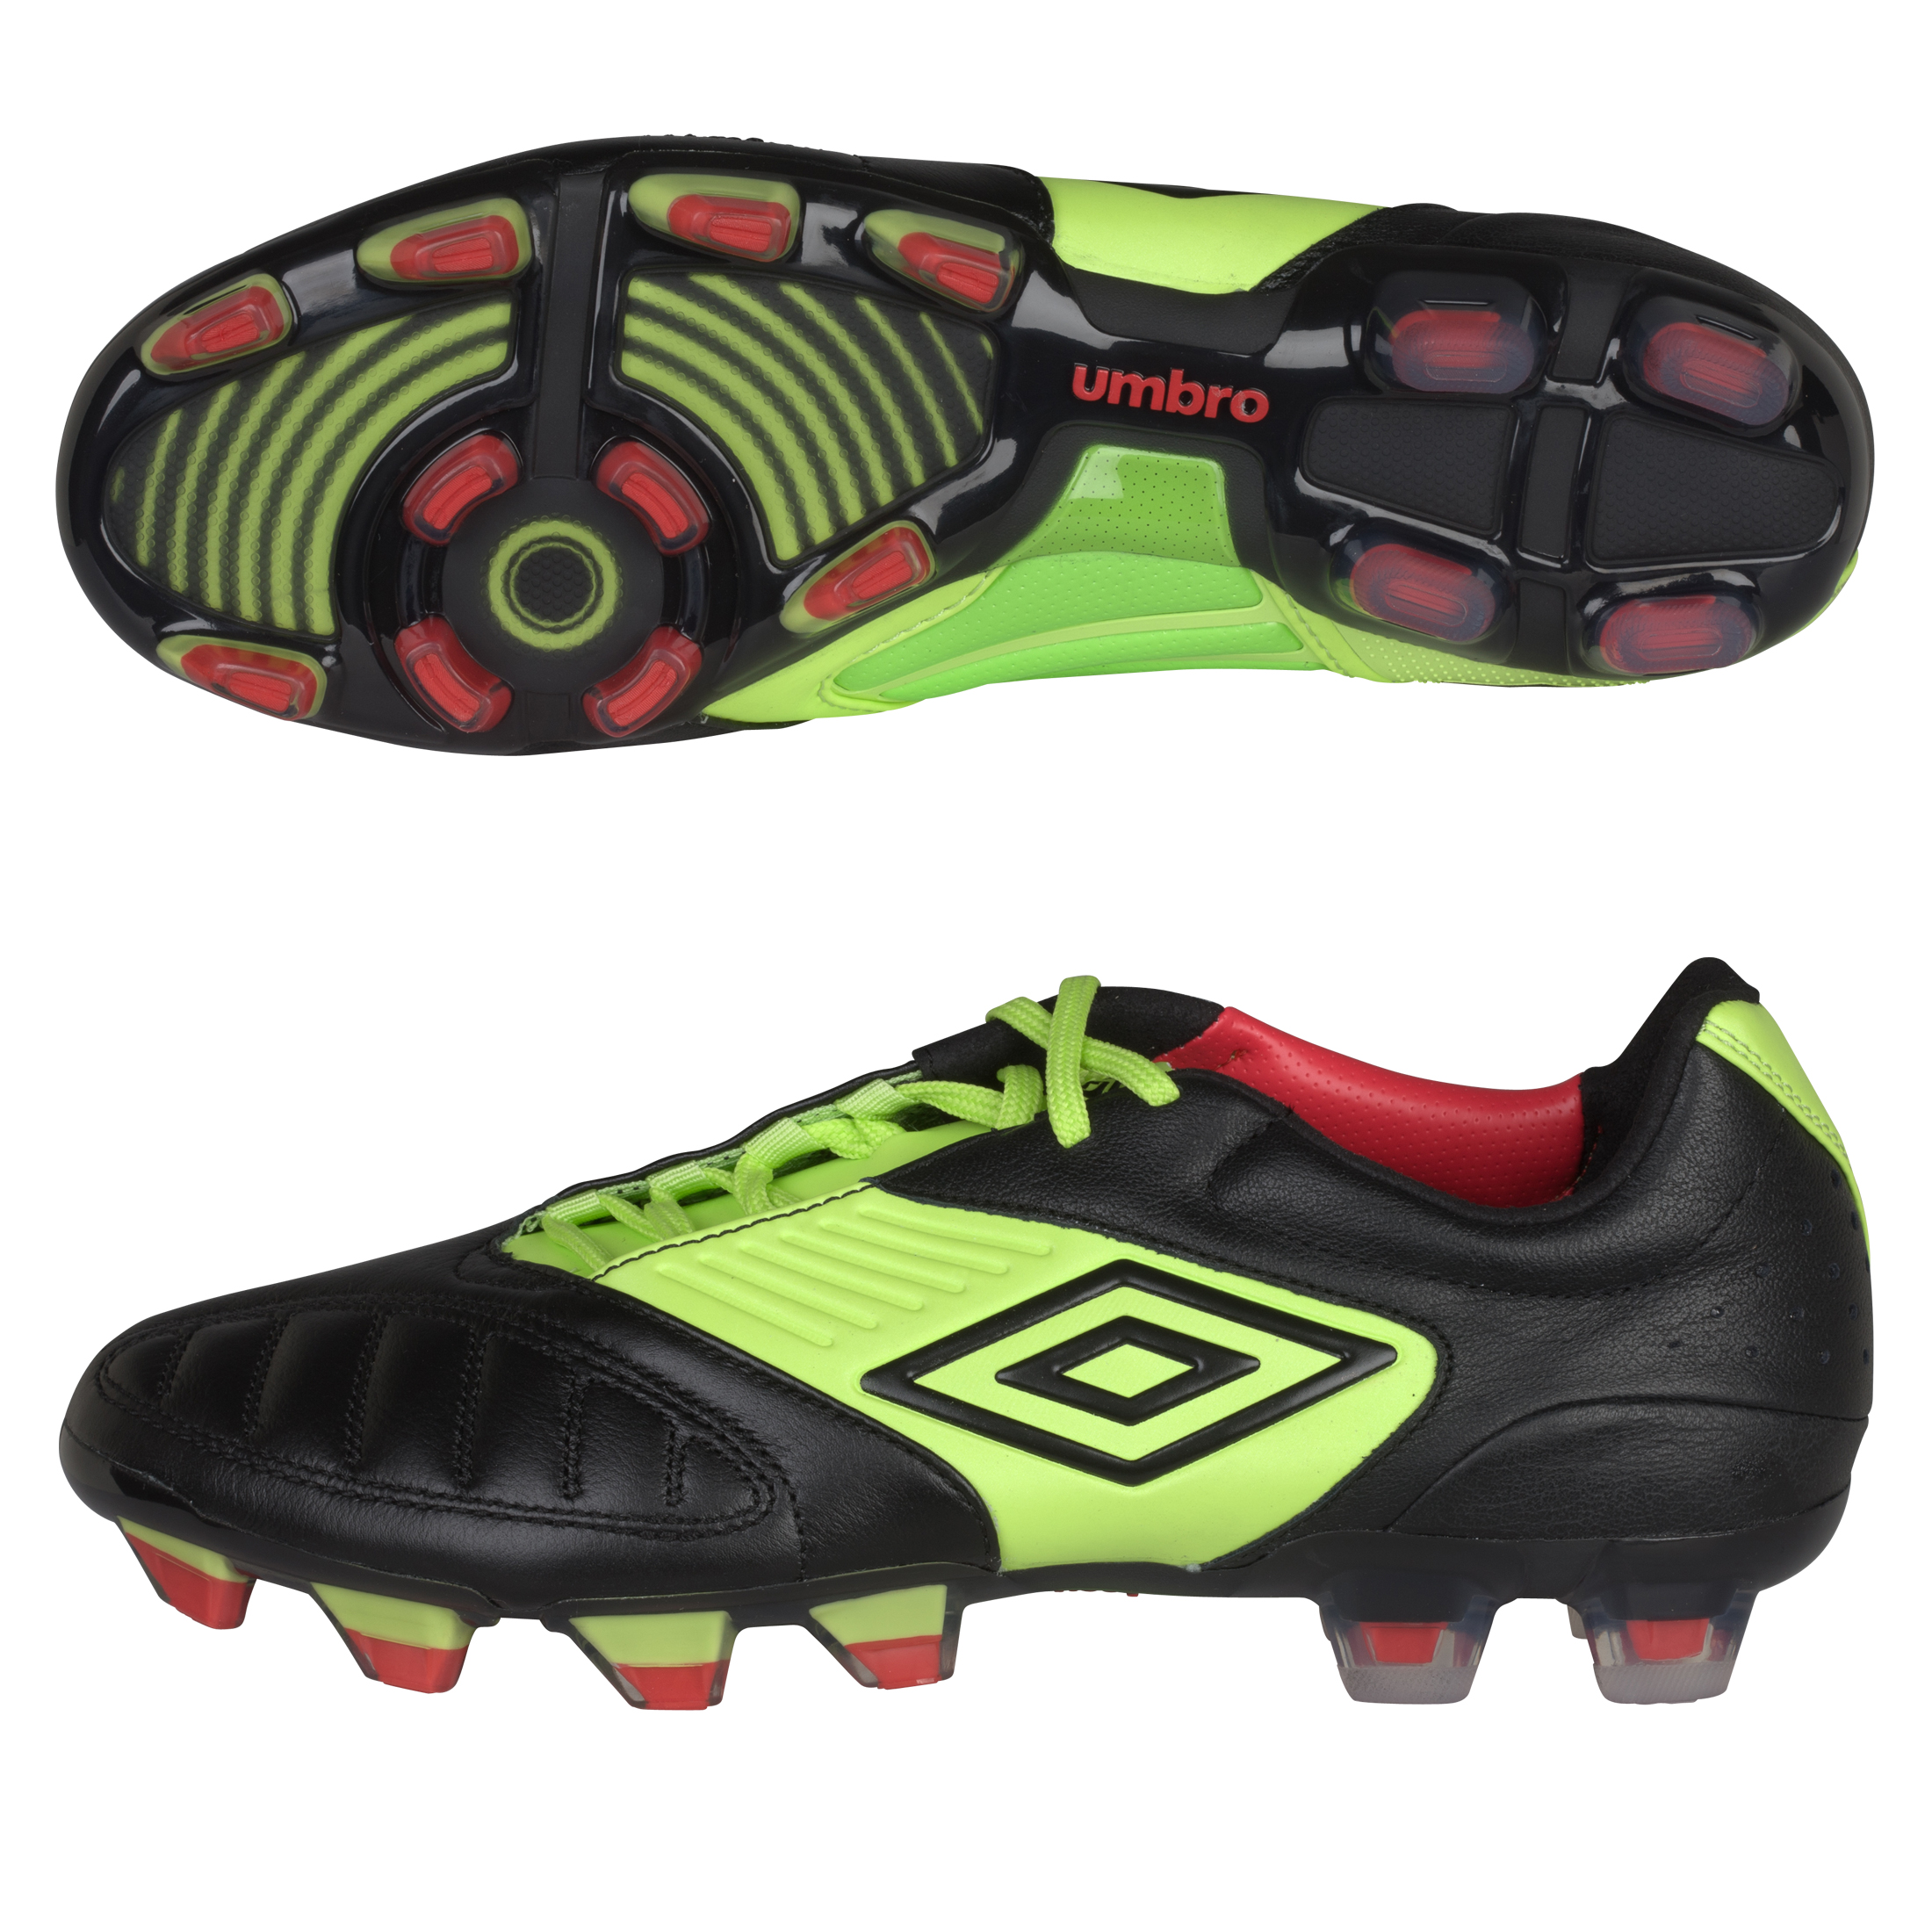 Umbro Geometra Pro Firm Ground Football Boots - Black/White/Sharp Green/True Red